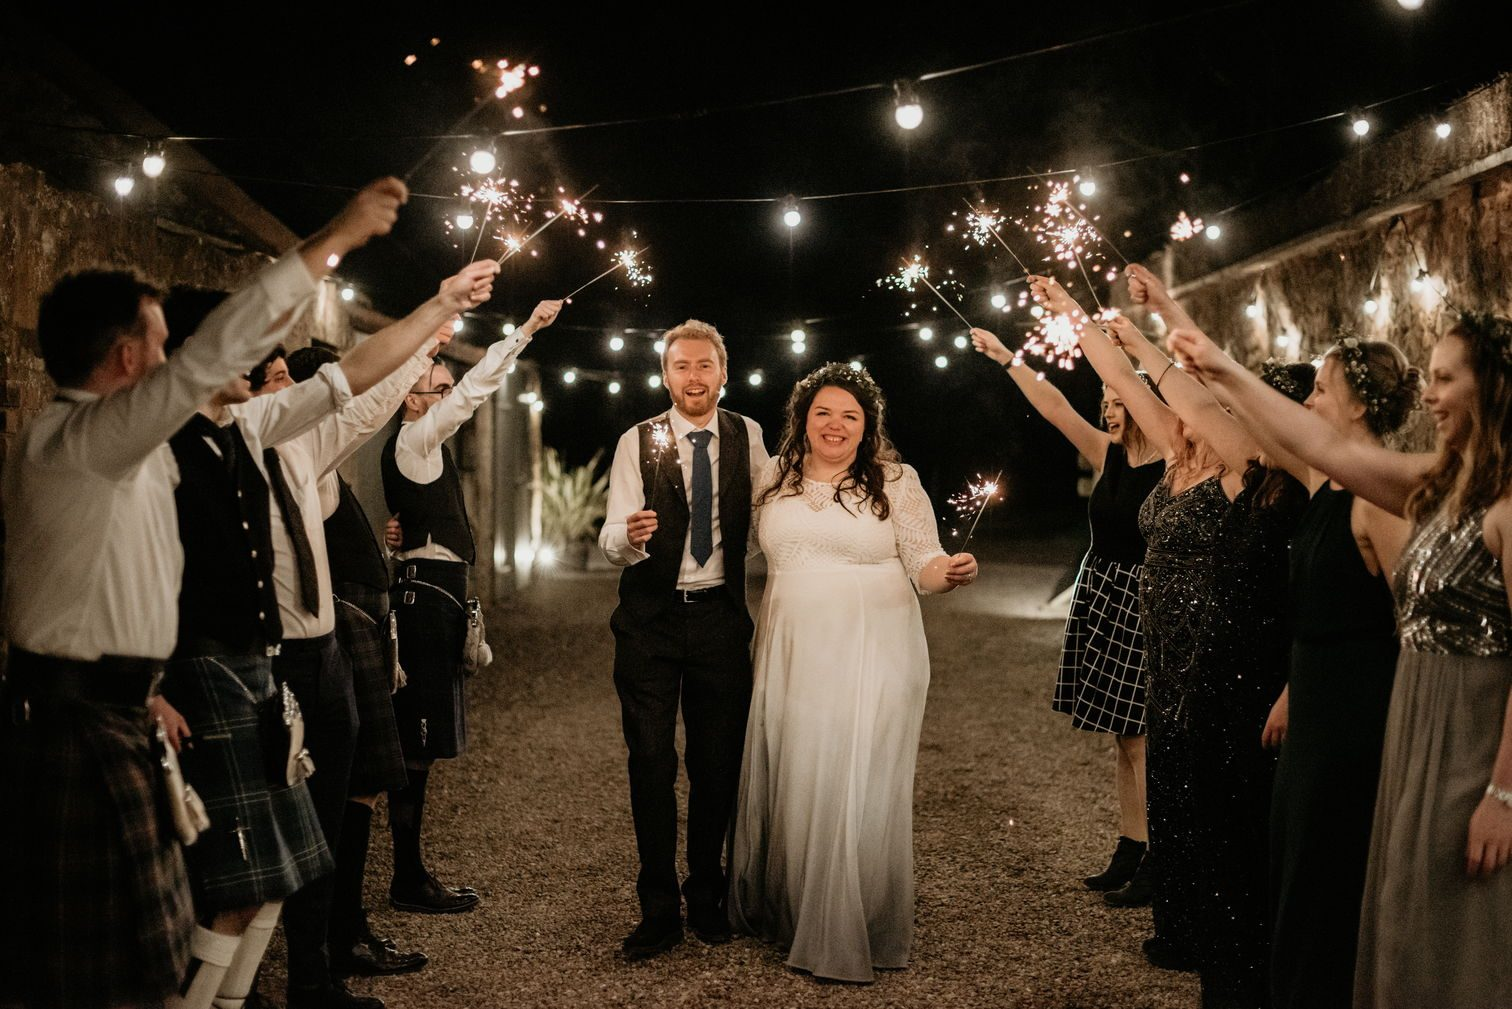 Me and Alex, groomsmen and bridesmaids, celebrating with sparklers